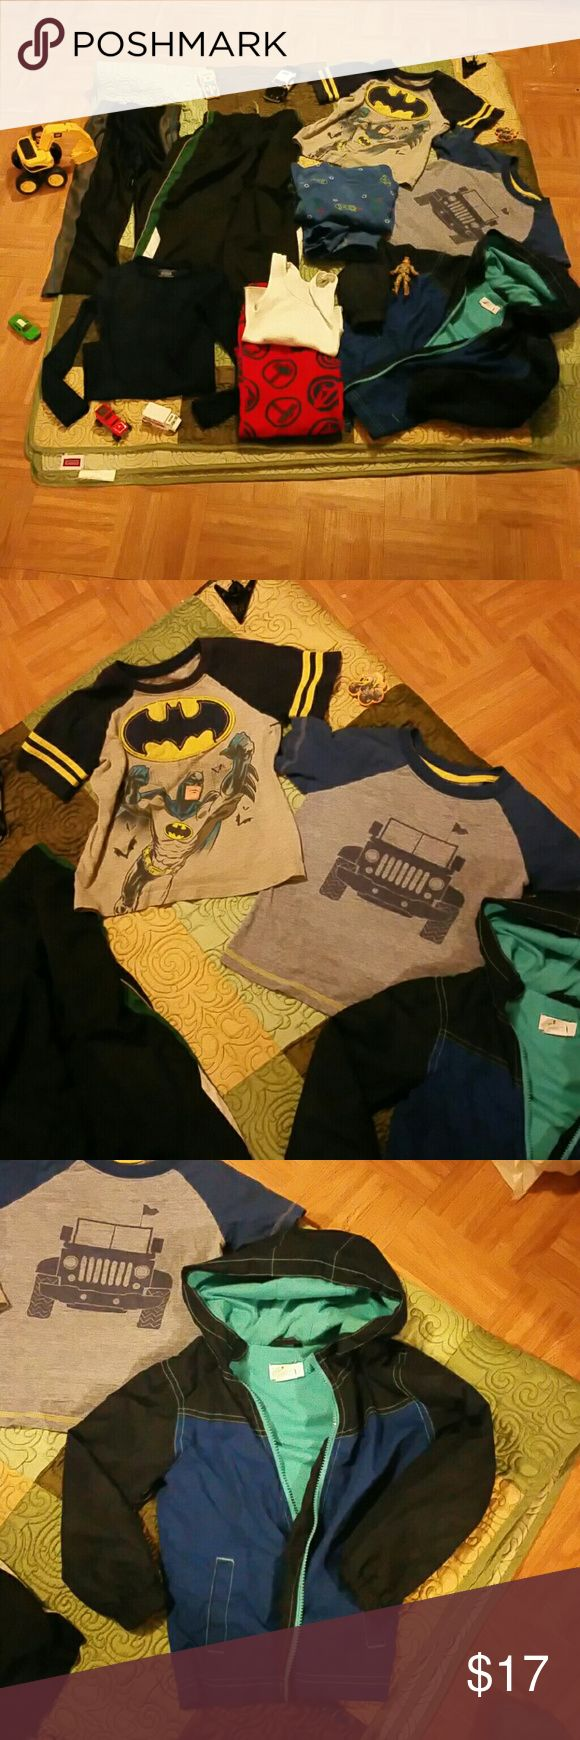 ¤¤Boys Bundle¤¤  size 4T, one 6/7 1 batman shirt,  1 shirt with jeep/truck, 1 windbreaker jacket- has my son's name on inside,  1 compression long sleeve size 6/7- my son wore this at age 4 (runs small).  2 wind/track pants ( green striped pant has small unsewn section at seam on back, only noticed it when reviewing for posting ).  Also 1 matching PJ set ( has tear at knee)  and another PJ set matched together by my little one- Thor pants with white tank.  All size 4T , except long sleeve…